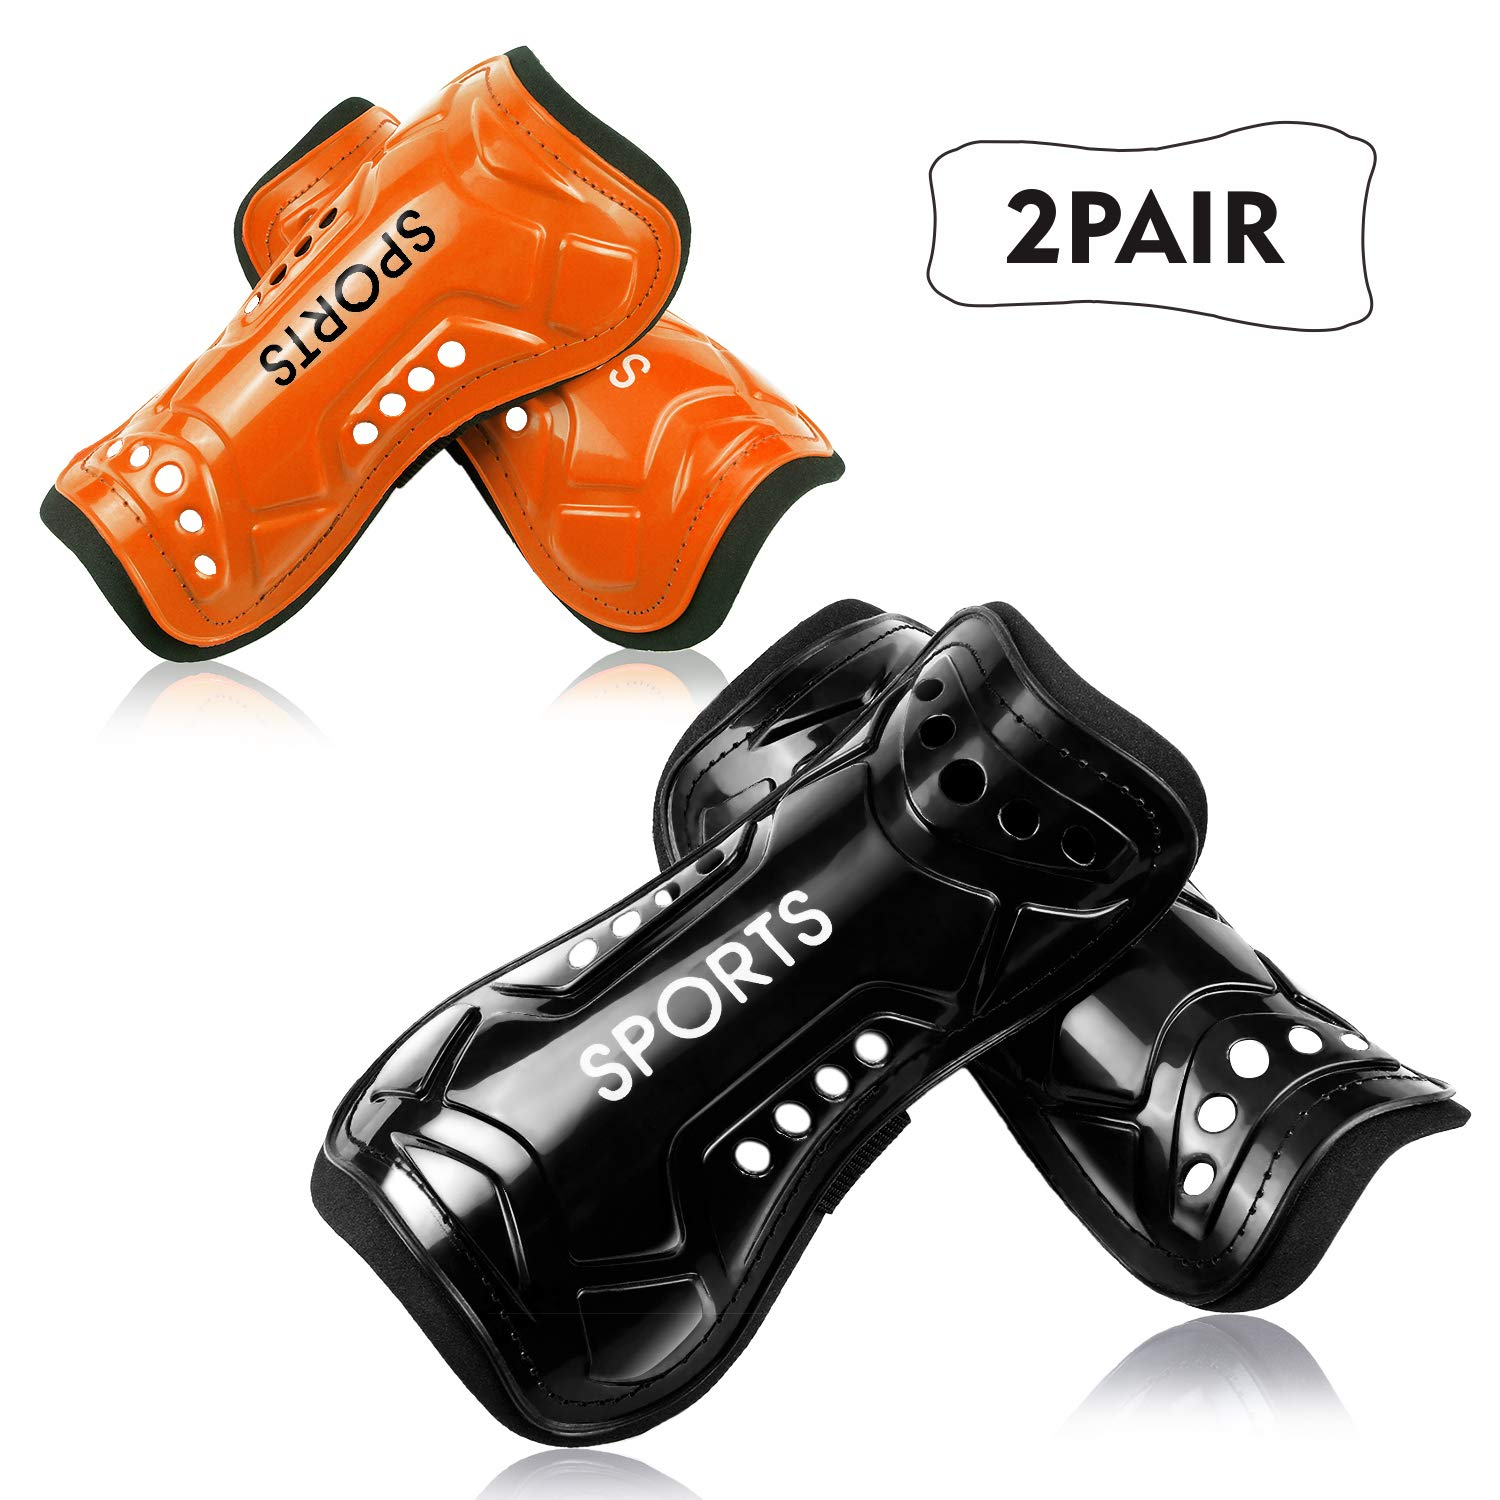 Youth Soccer Shin Guards 2 Pair Lightweight and Breathable Child Calf Protective Gear Soccer Equipment for 3-10 Years Old Boys Girls Children Teenagers